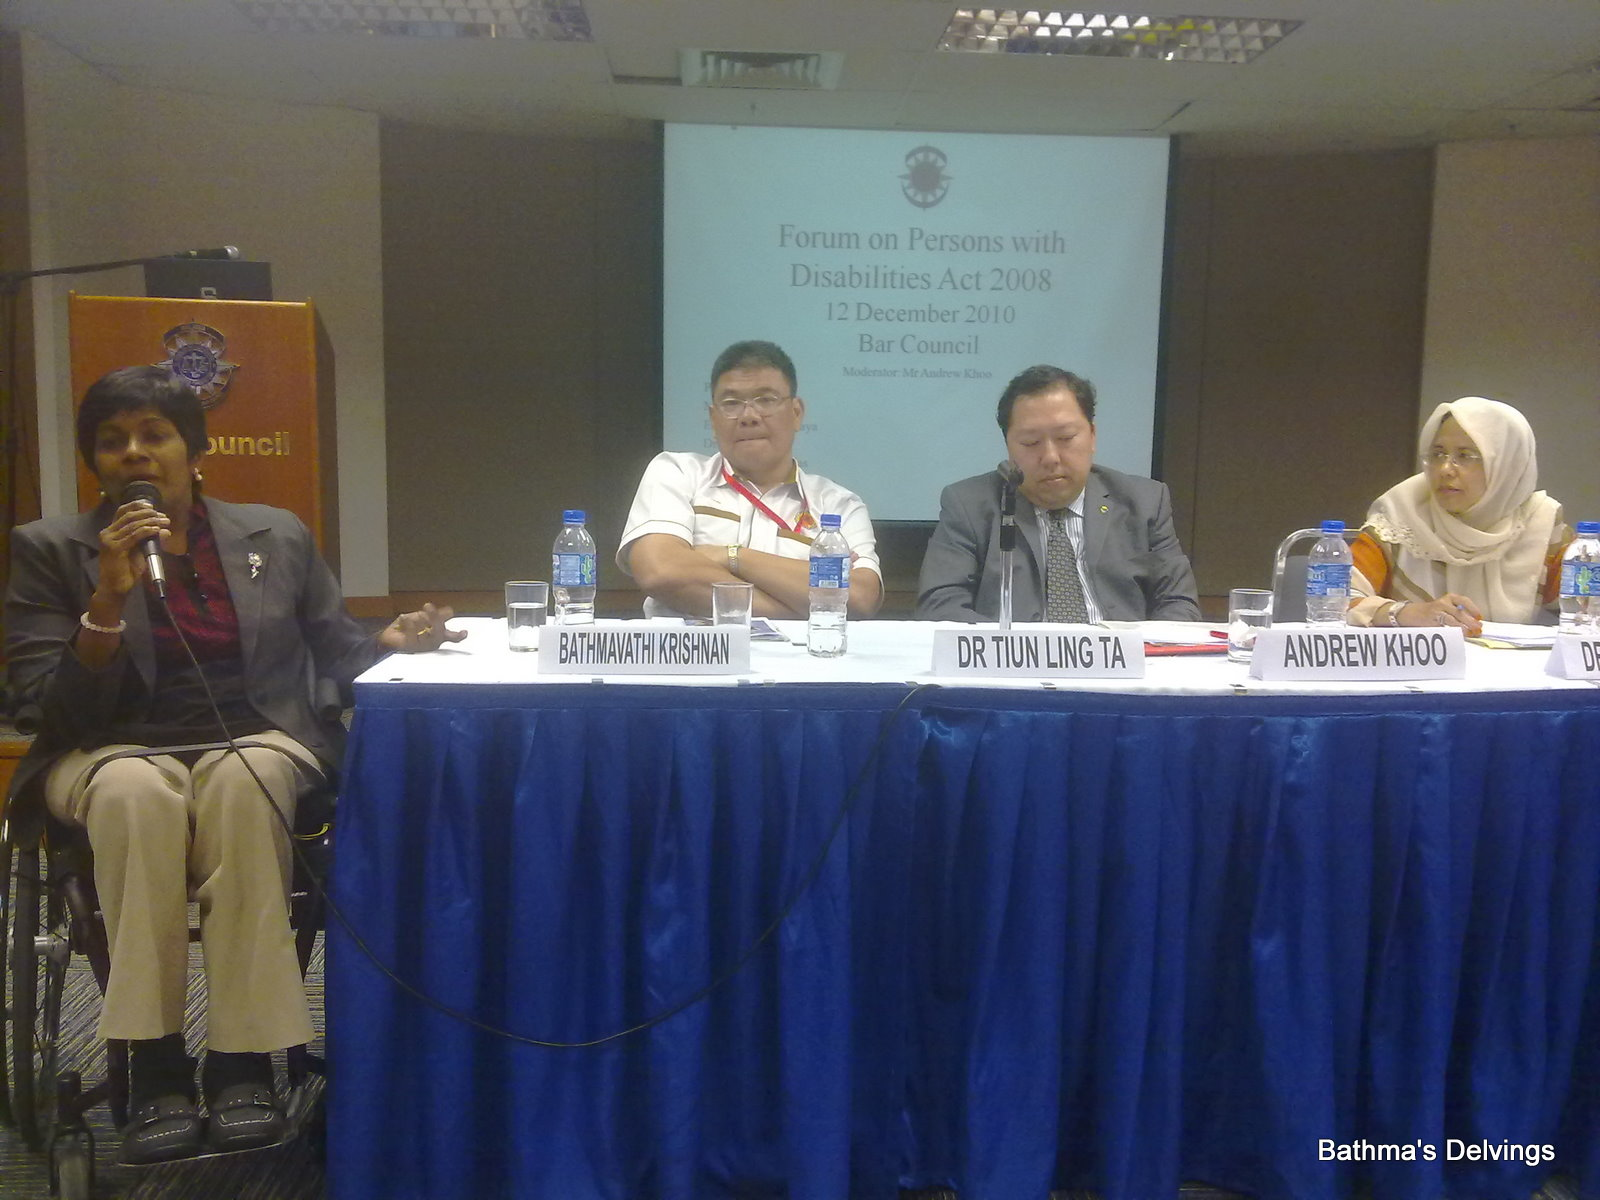 BAR COUNCIL FORUM ON PERSONS WITH DISABILITIES ACT